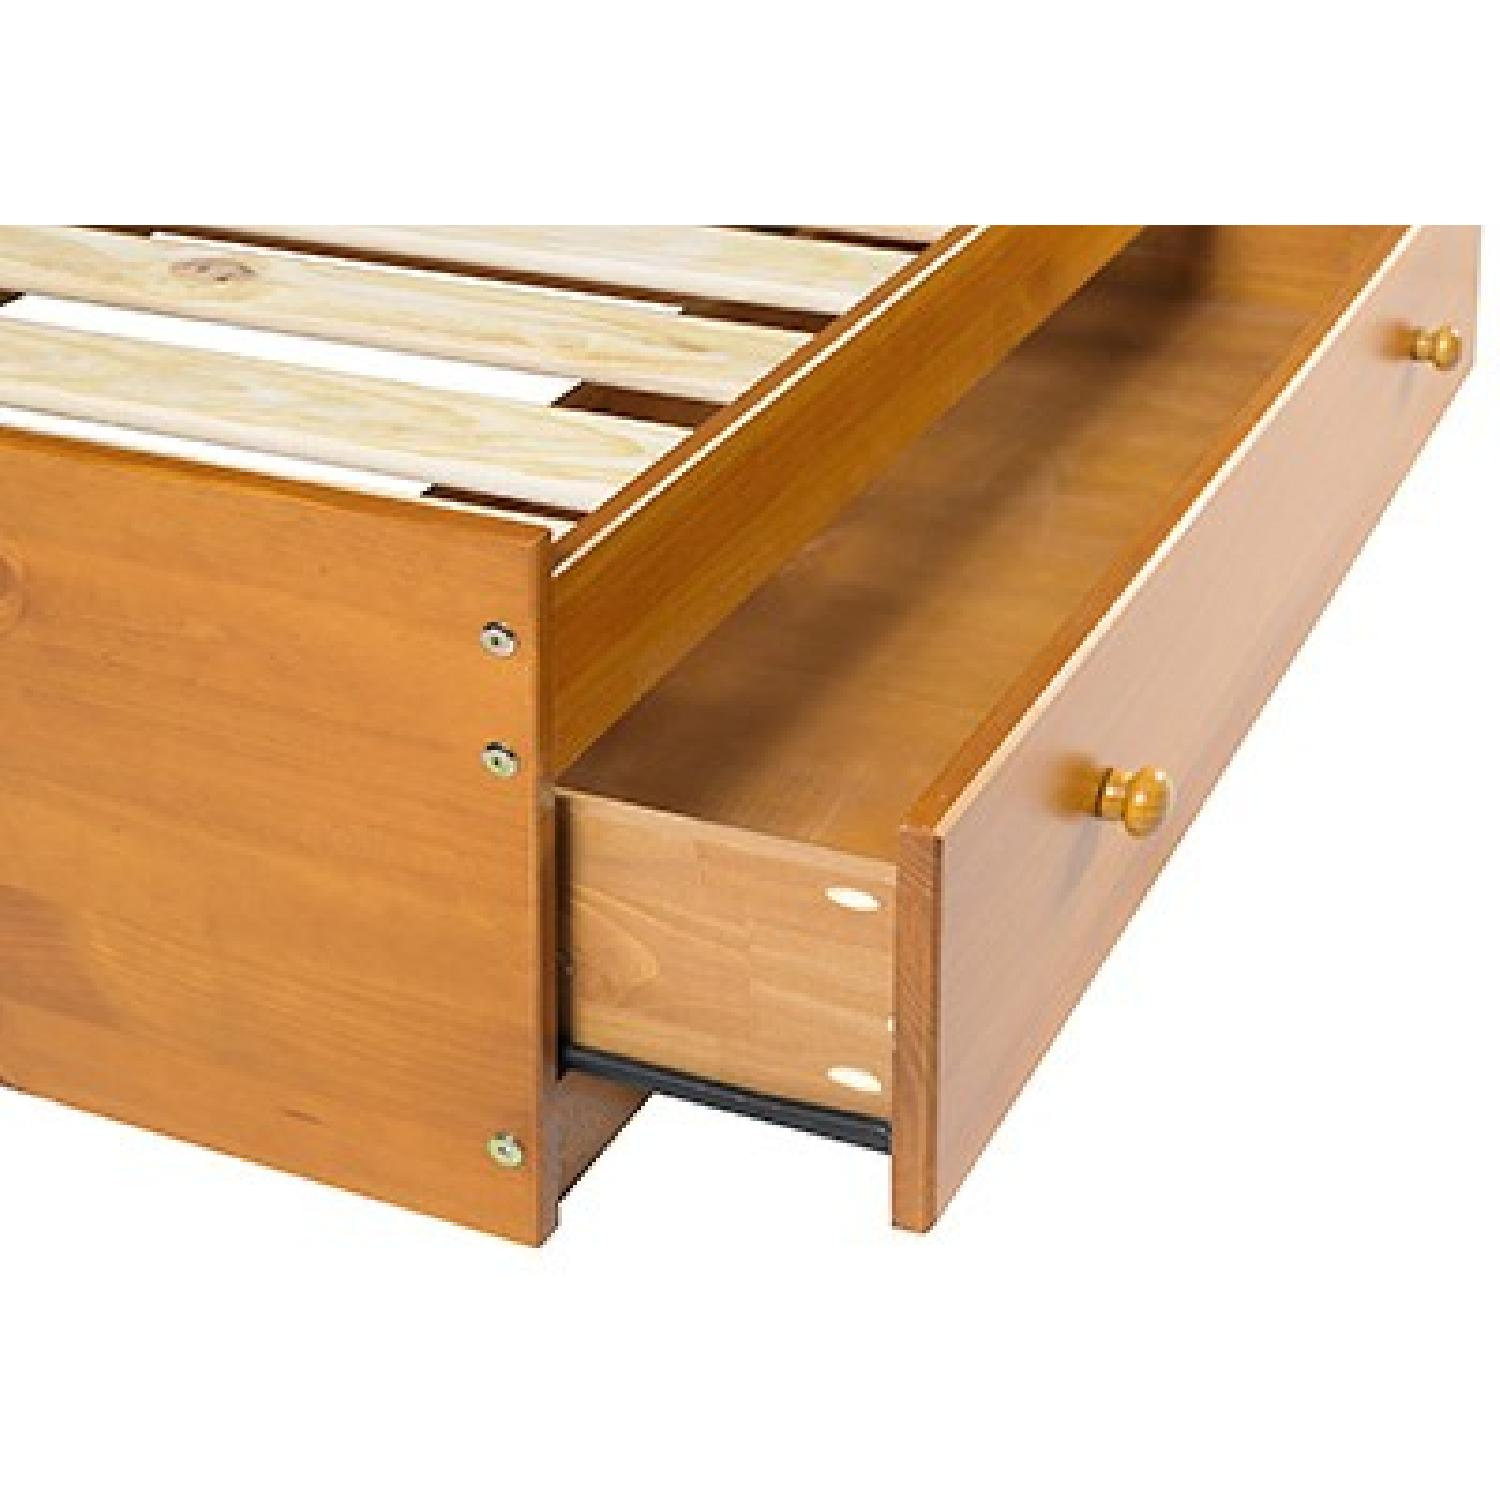 Twin Size Solid Wood Bed in Mahogany w/ Storage Drawers - image-6